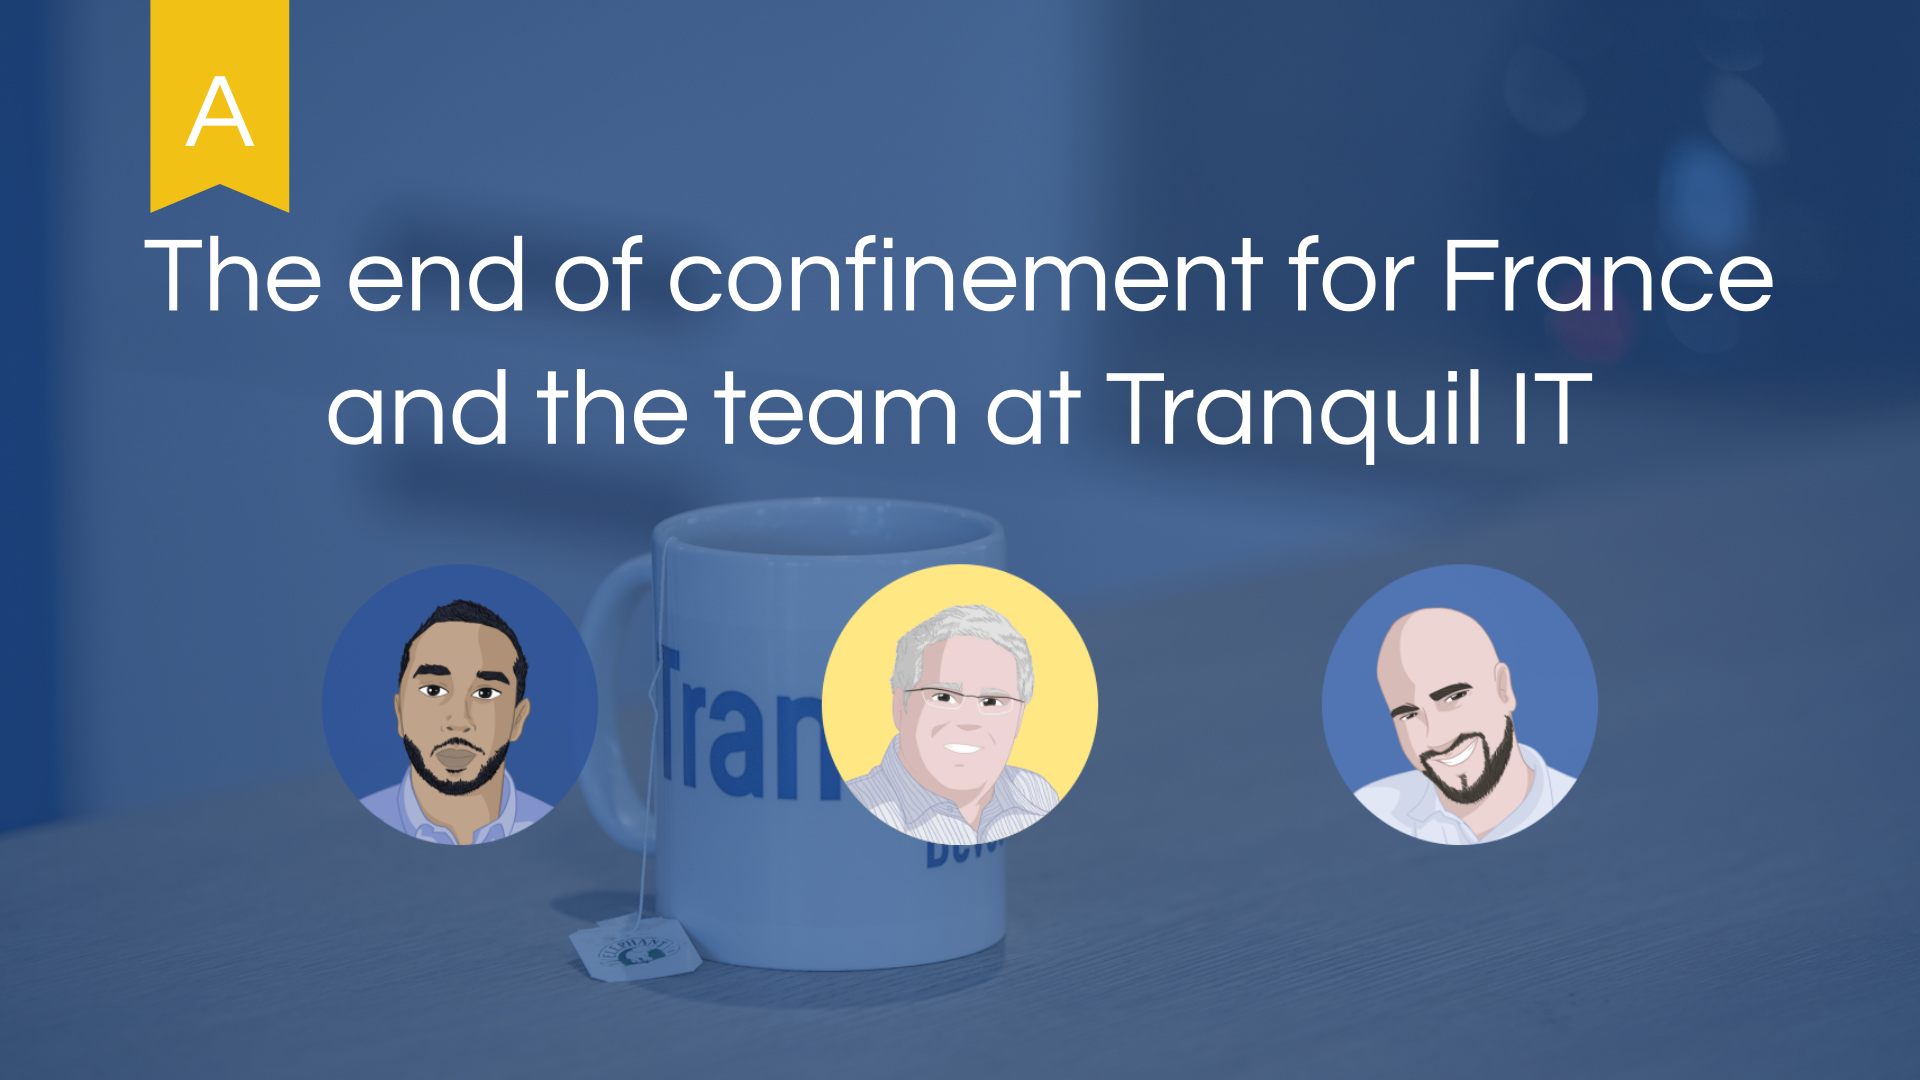 The end of confinement for France and the team at Tranquil IT